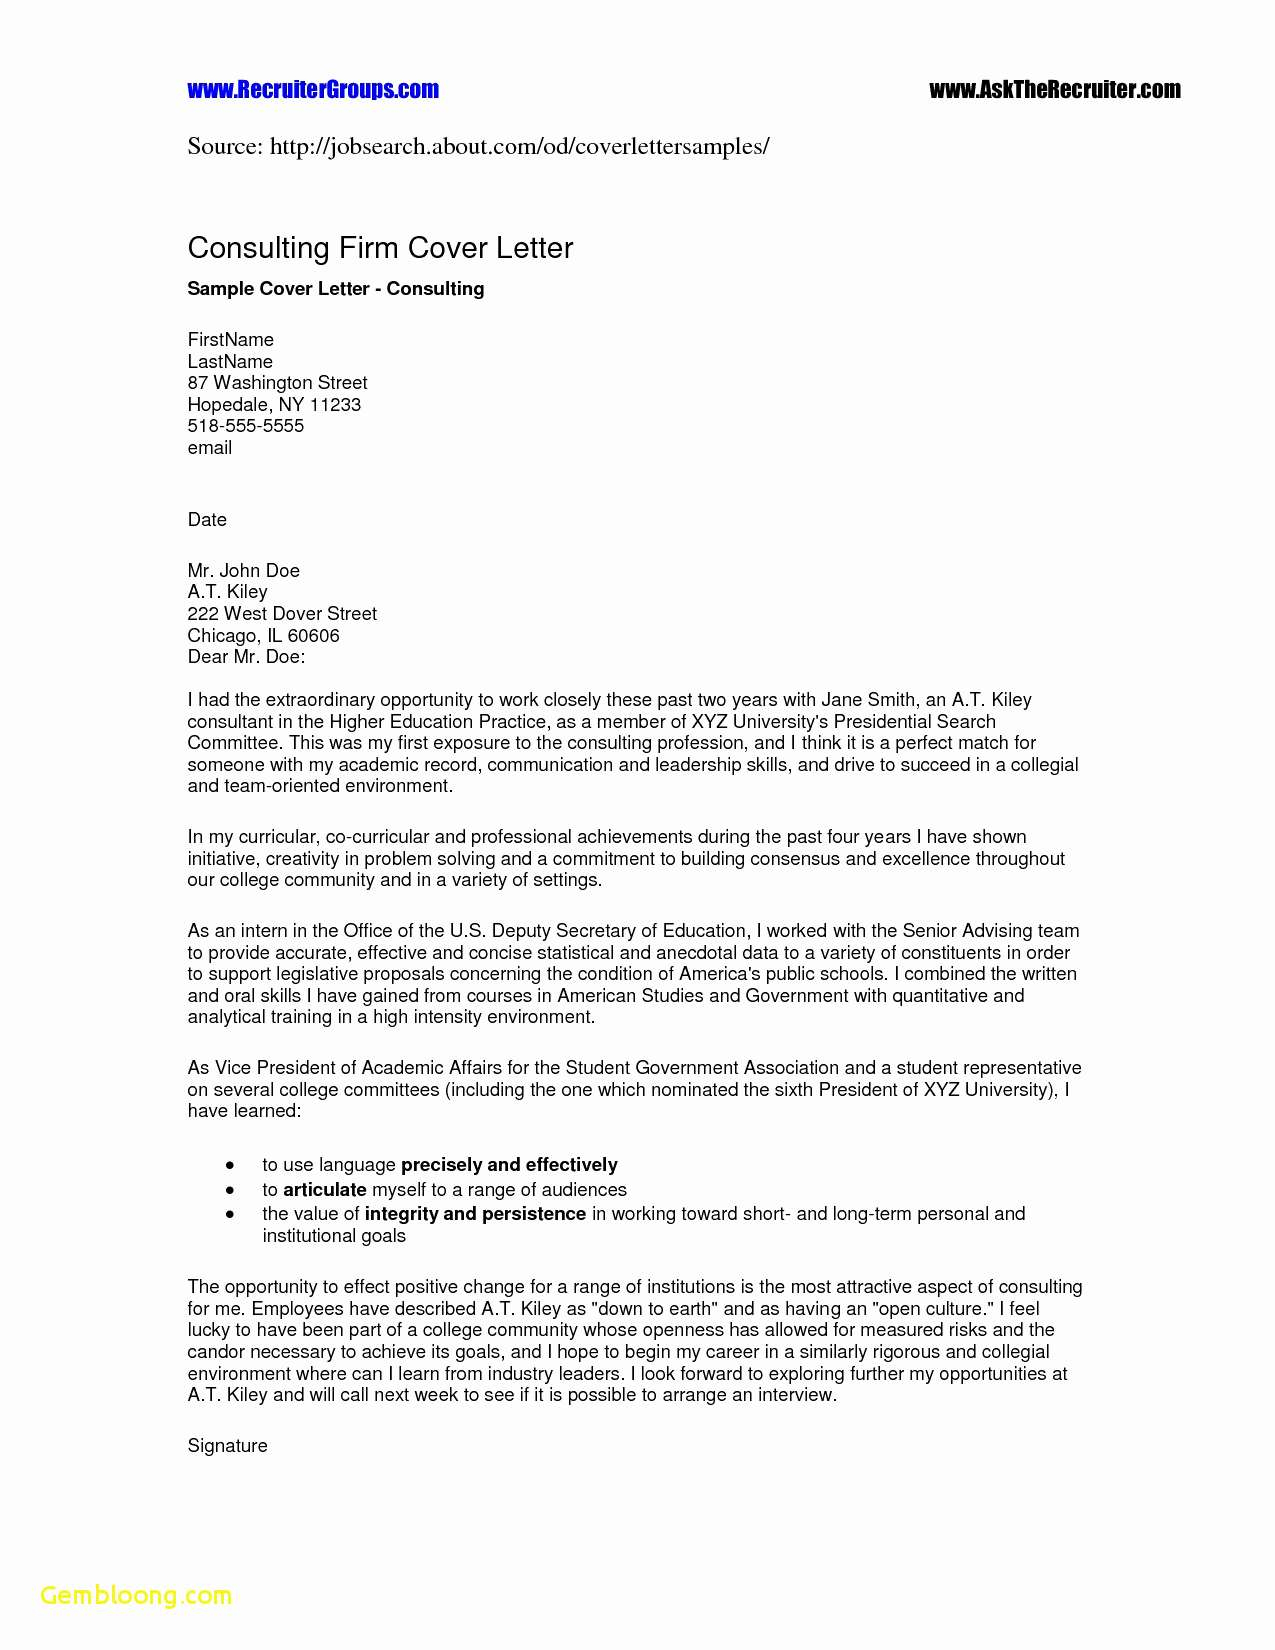 Cover Letter Template Download - Resume and Cover Letter Template Inspirational Resume Template for